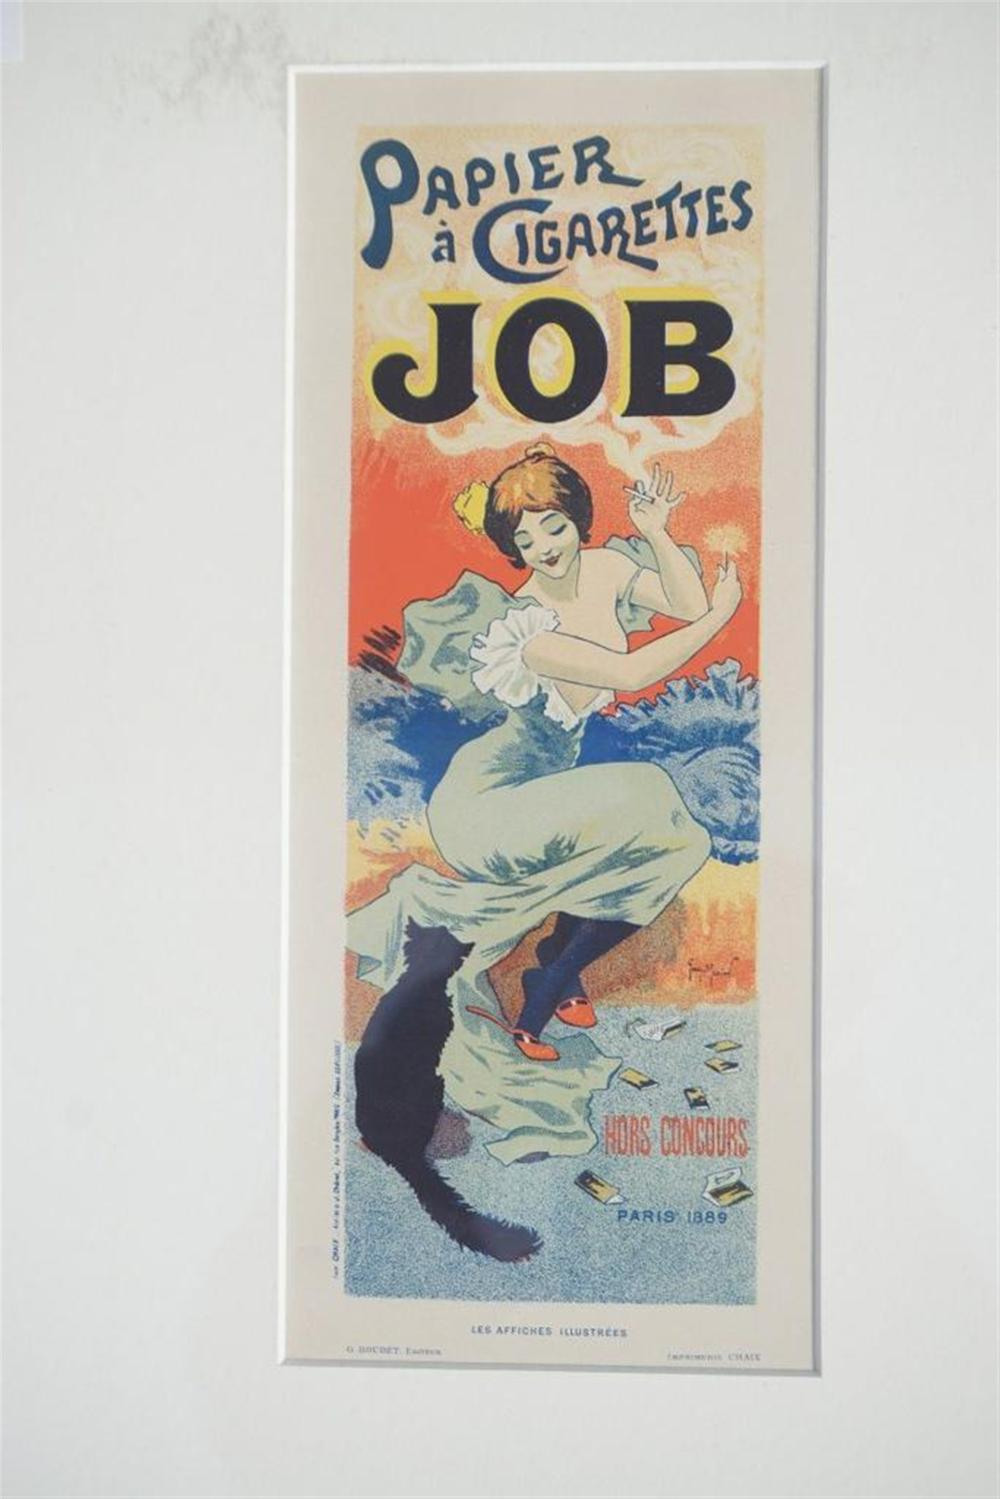 "1896 GEORGES MERIEN (?) JOB CIGARETTES, PARIS, 8 3/4"" X 12 1/4"", EXCELLENT CONDITION, SHRINK WRAPPED AND MATTED, FROM RETIRED DEALERS COLLECTION."